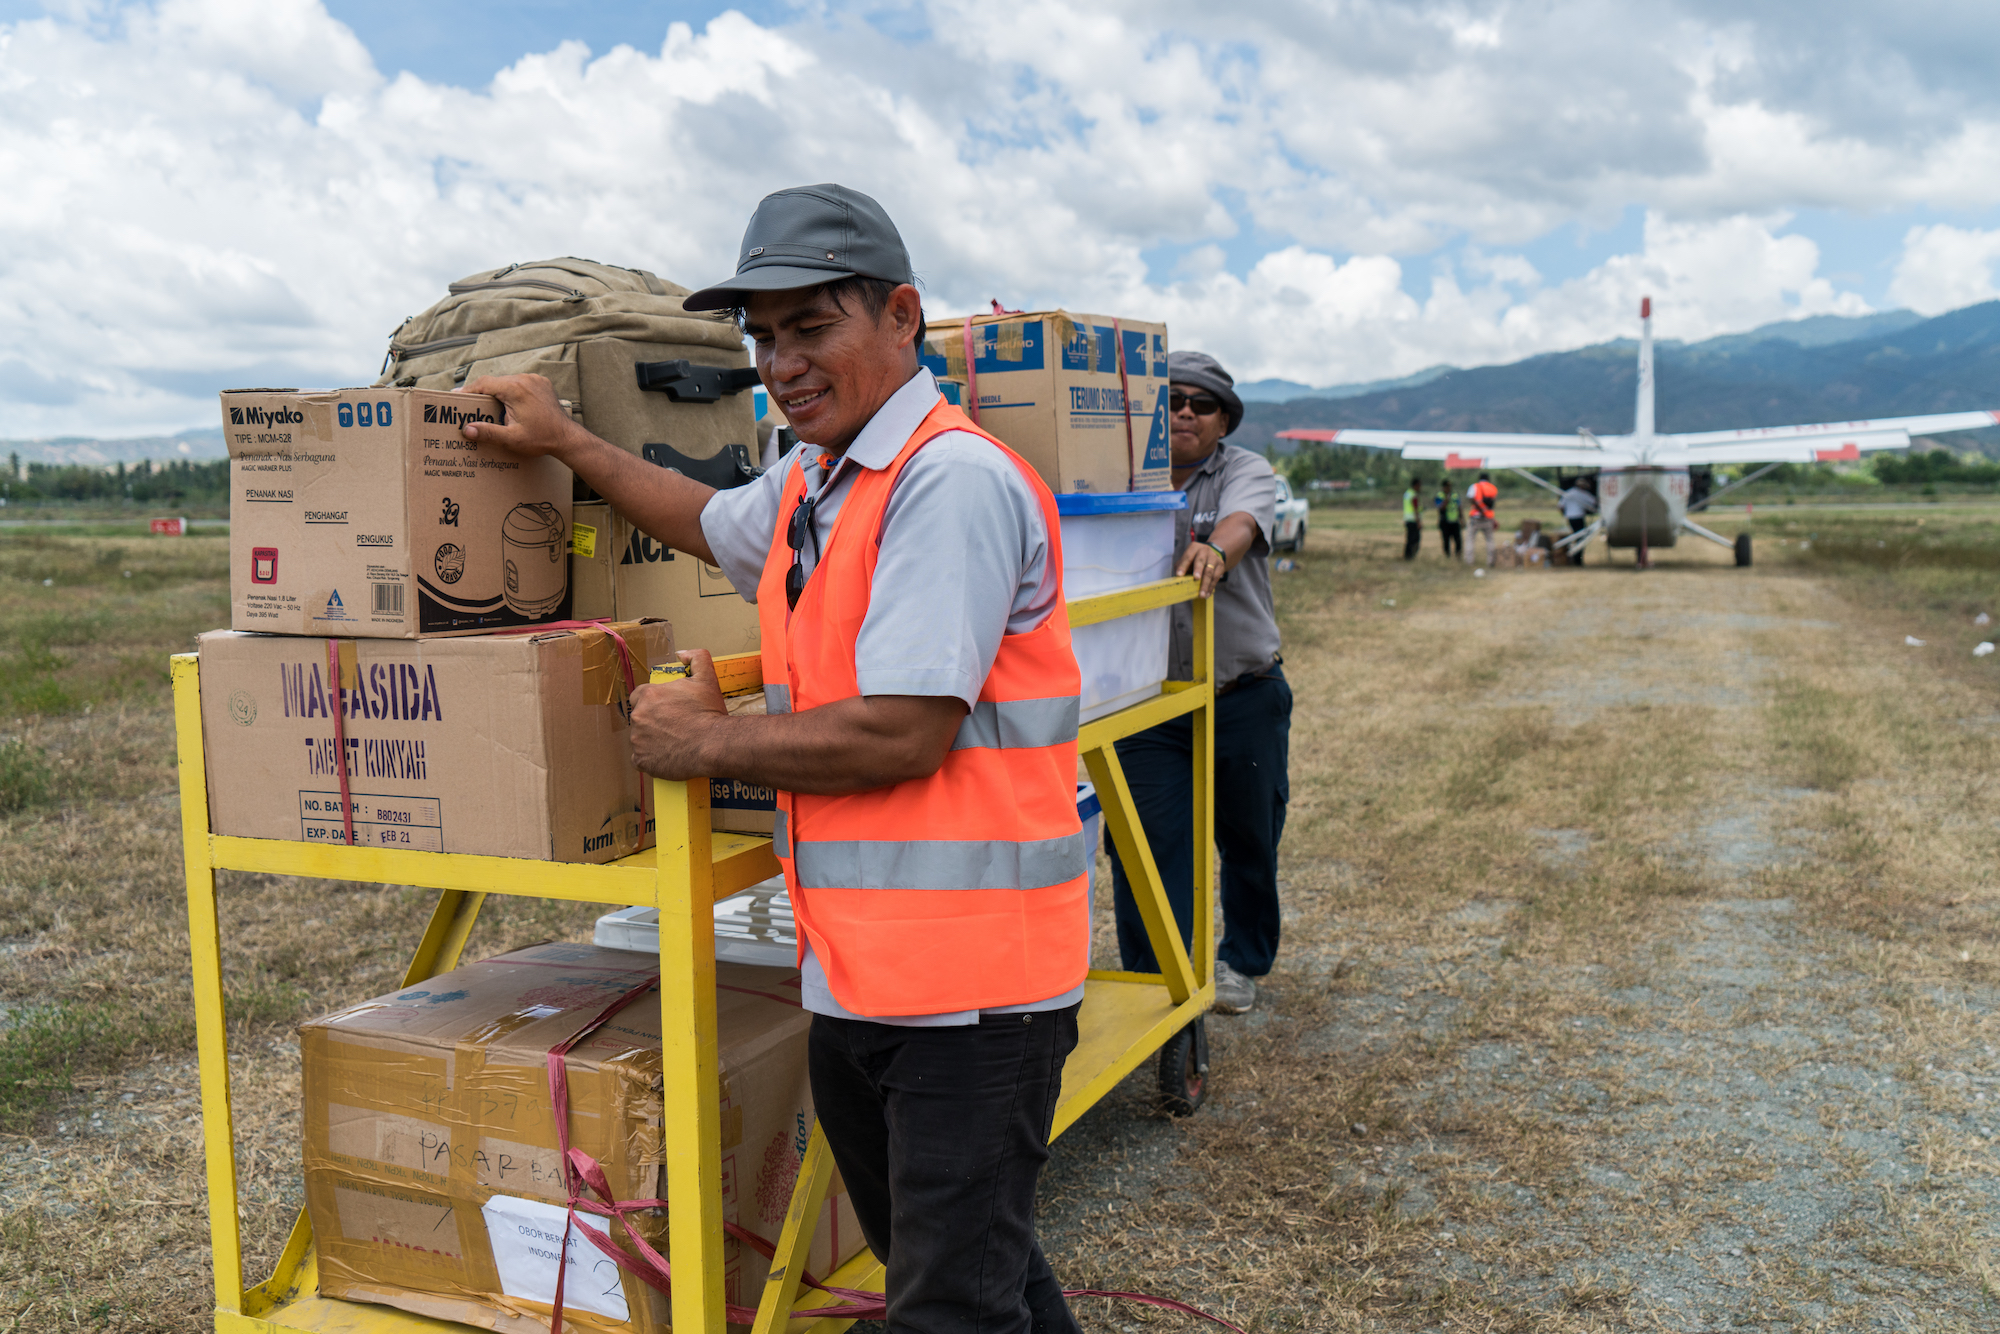 Christian Community Credit Union's $5,000 donation to Mission Aviation Fellowship's helped transport medical supplies to teams holding health clinics for people displaced by the earthquake in Palu, Indonesia.